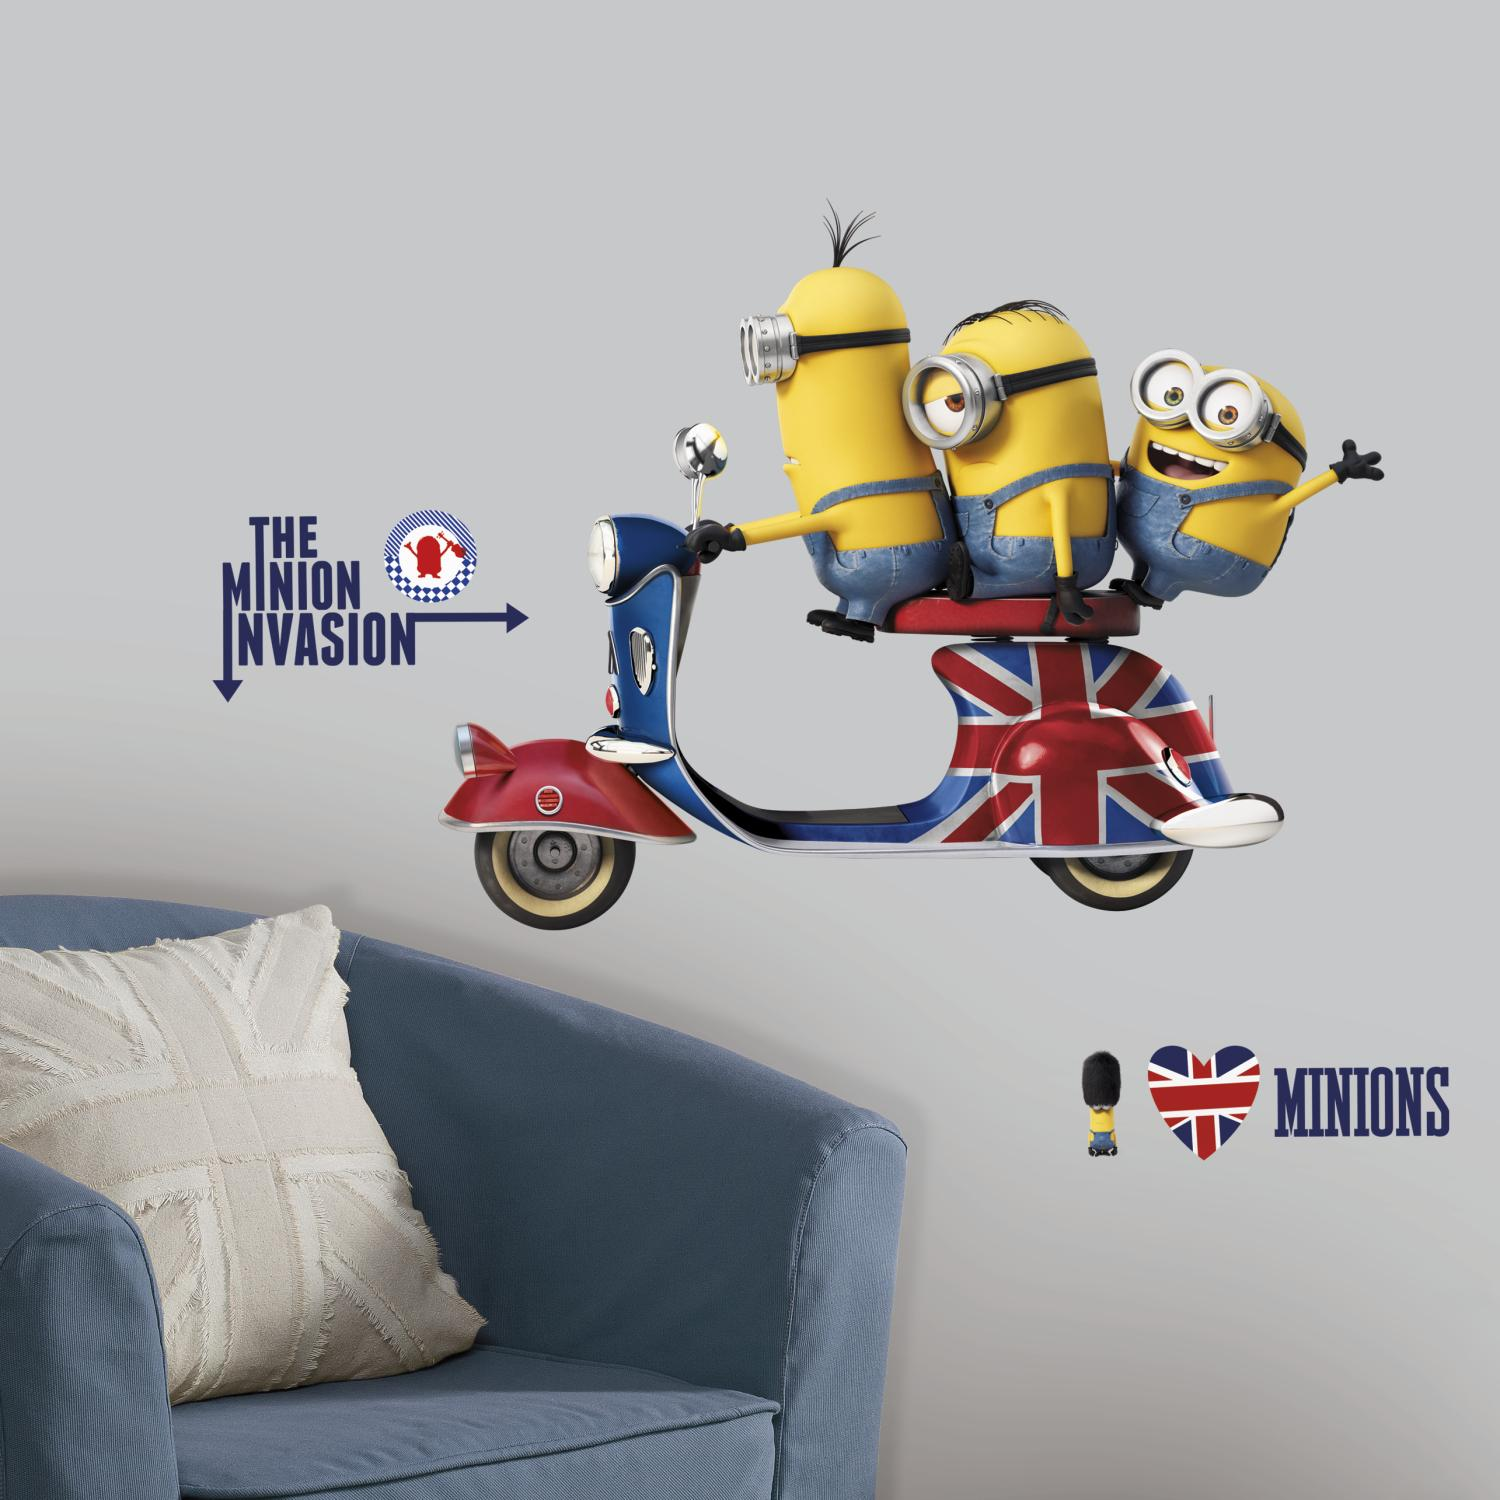 RoomMates RMK3002GM Minions The Movie Peel and Stick Giant Wall Decals